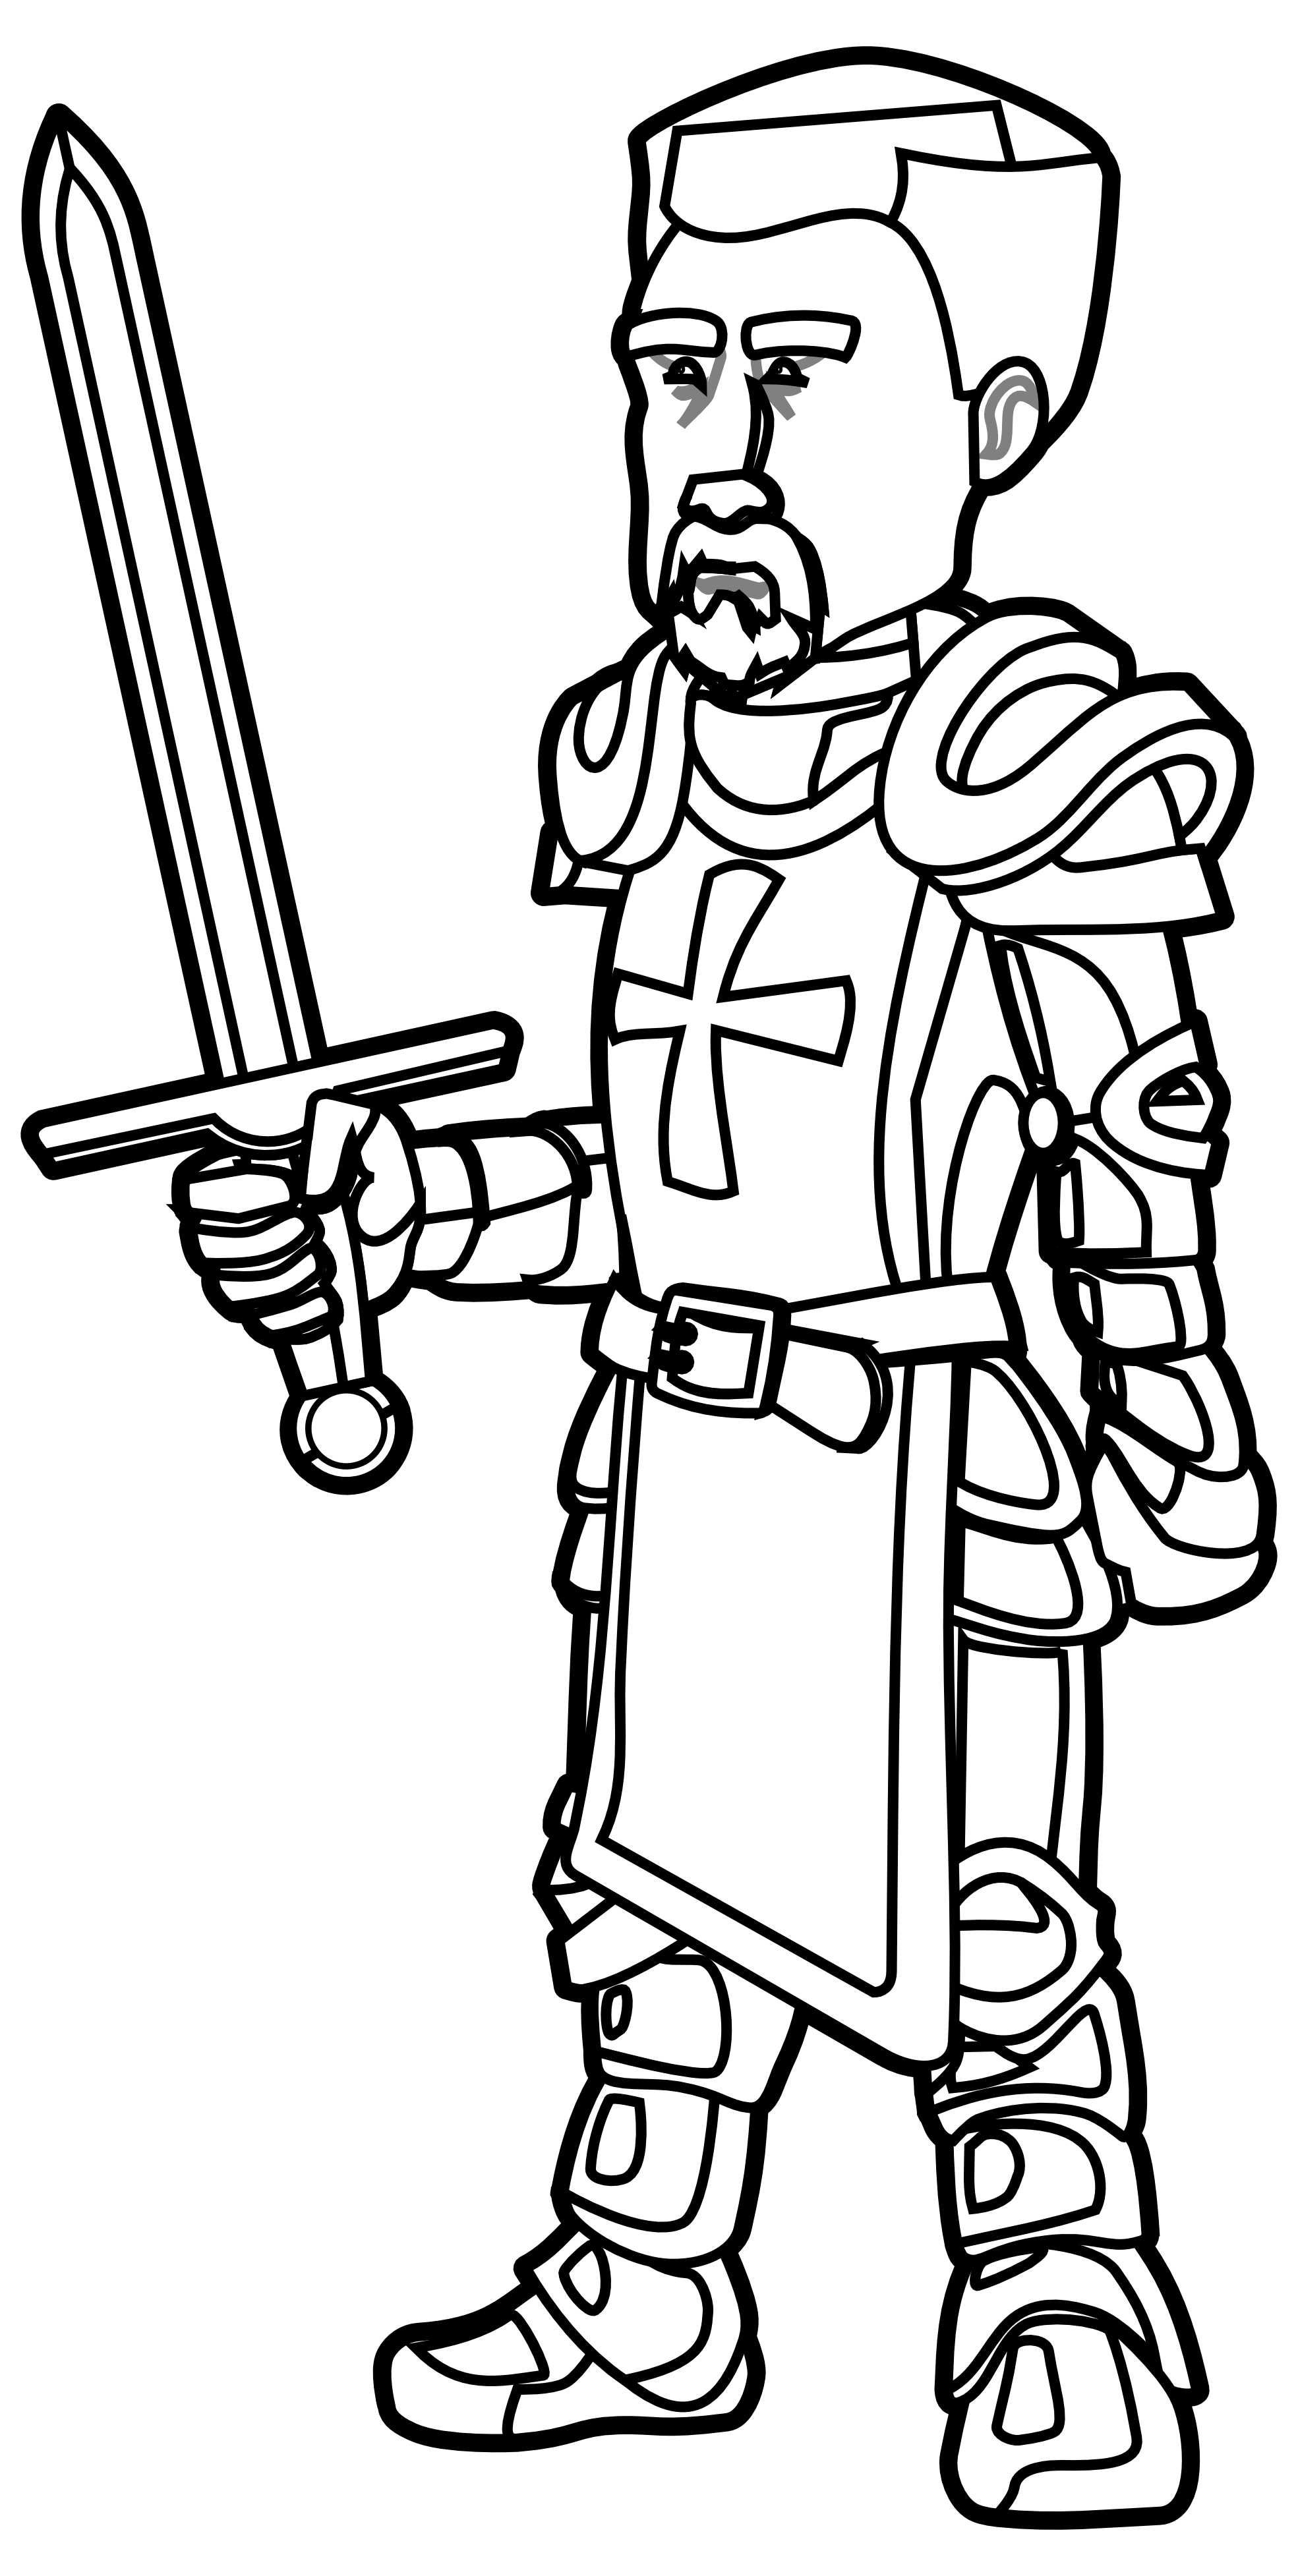 Knight basketball clipart free library Knight Clipart Black And White   Clipart Panda - Free Clipart Images free library